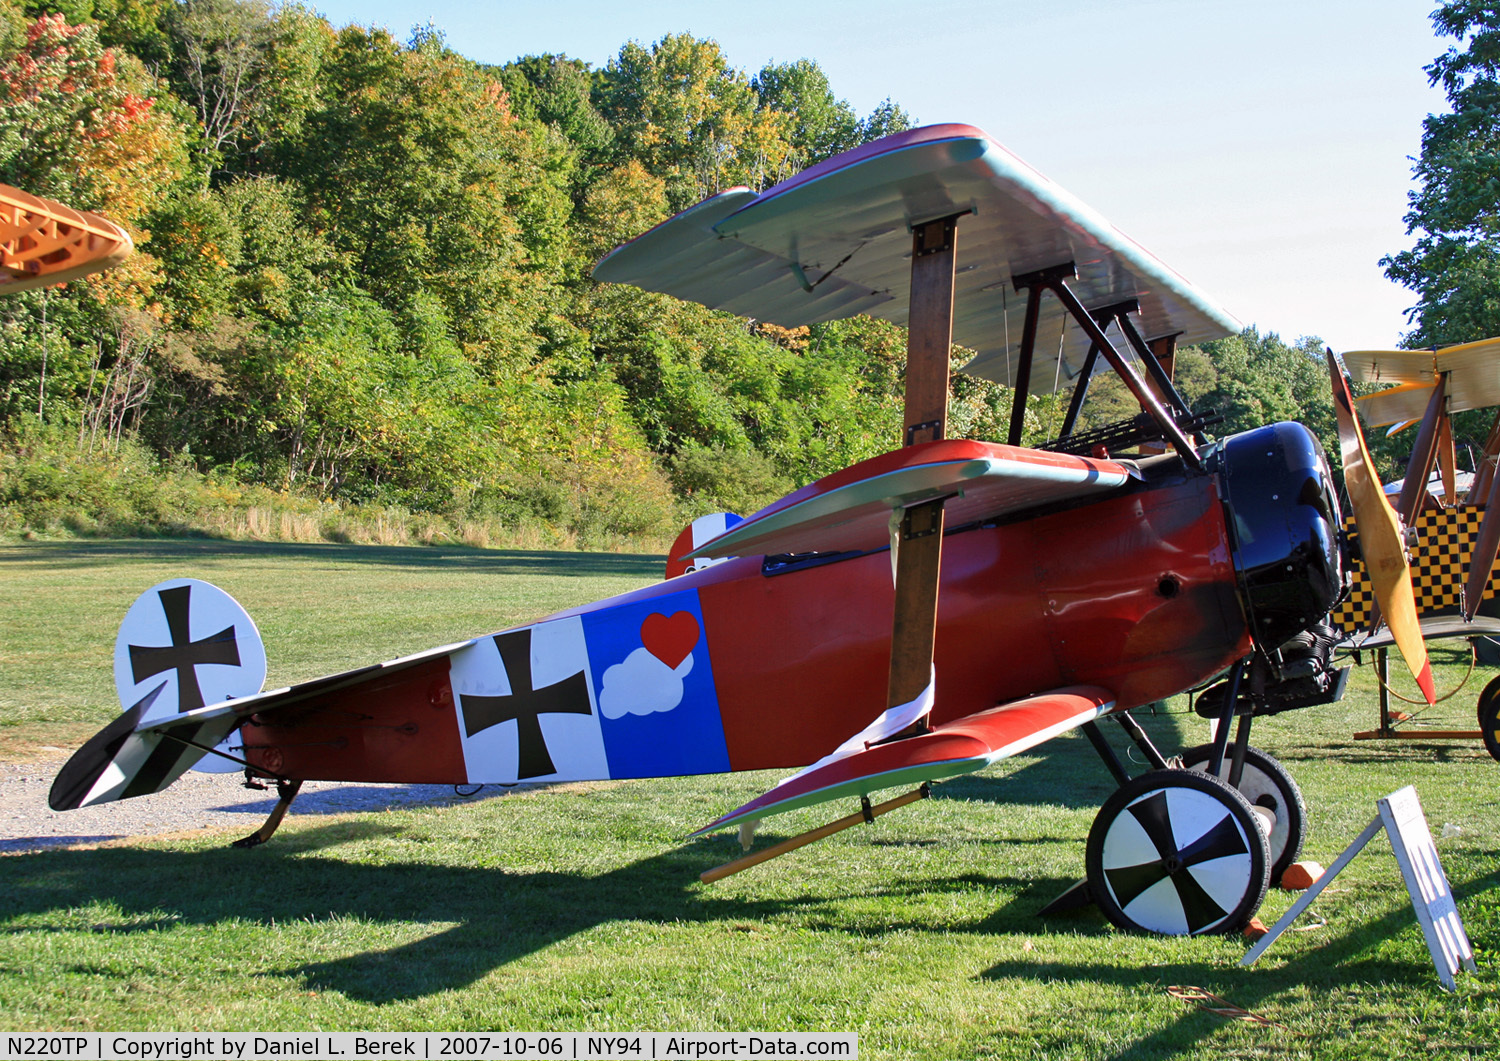 over the role of Red Baron